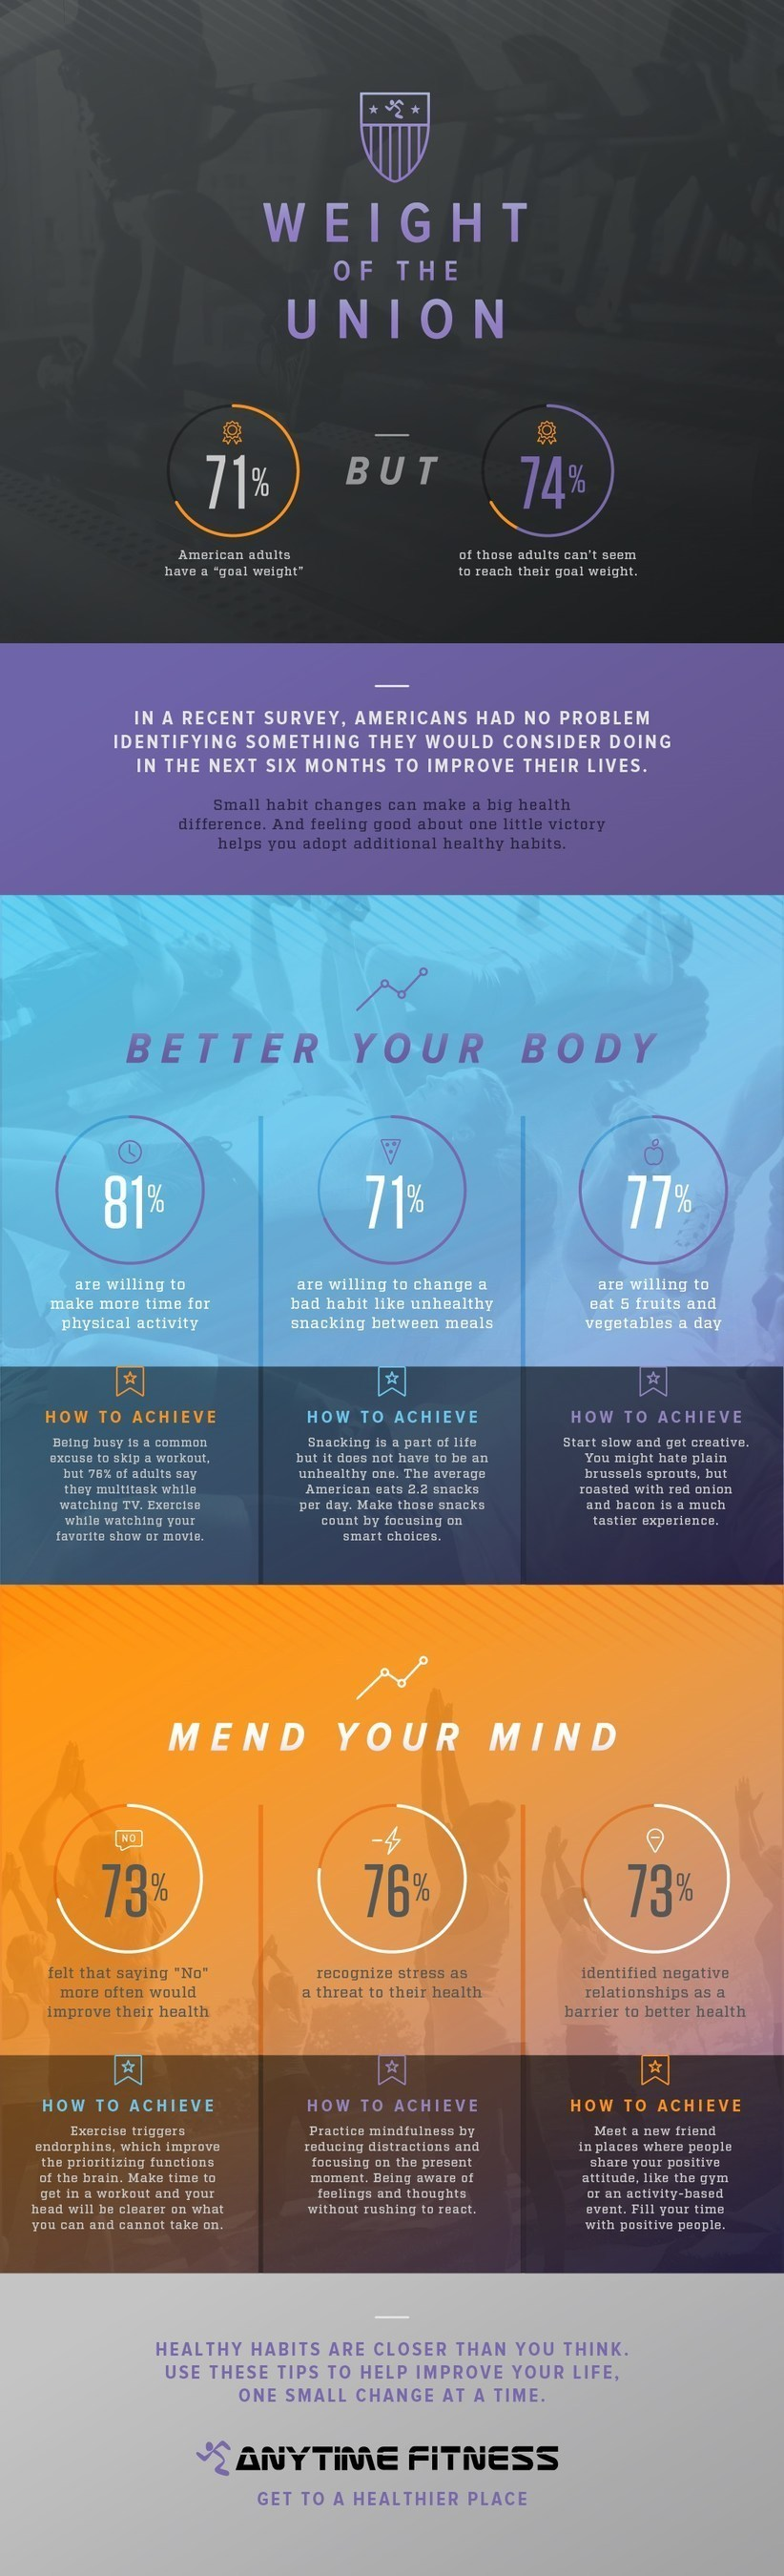 'Weight of the Union'  - Anytime Fitness Examines the Current State of Health and Fitness in America